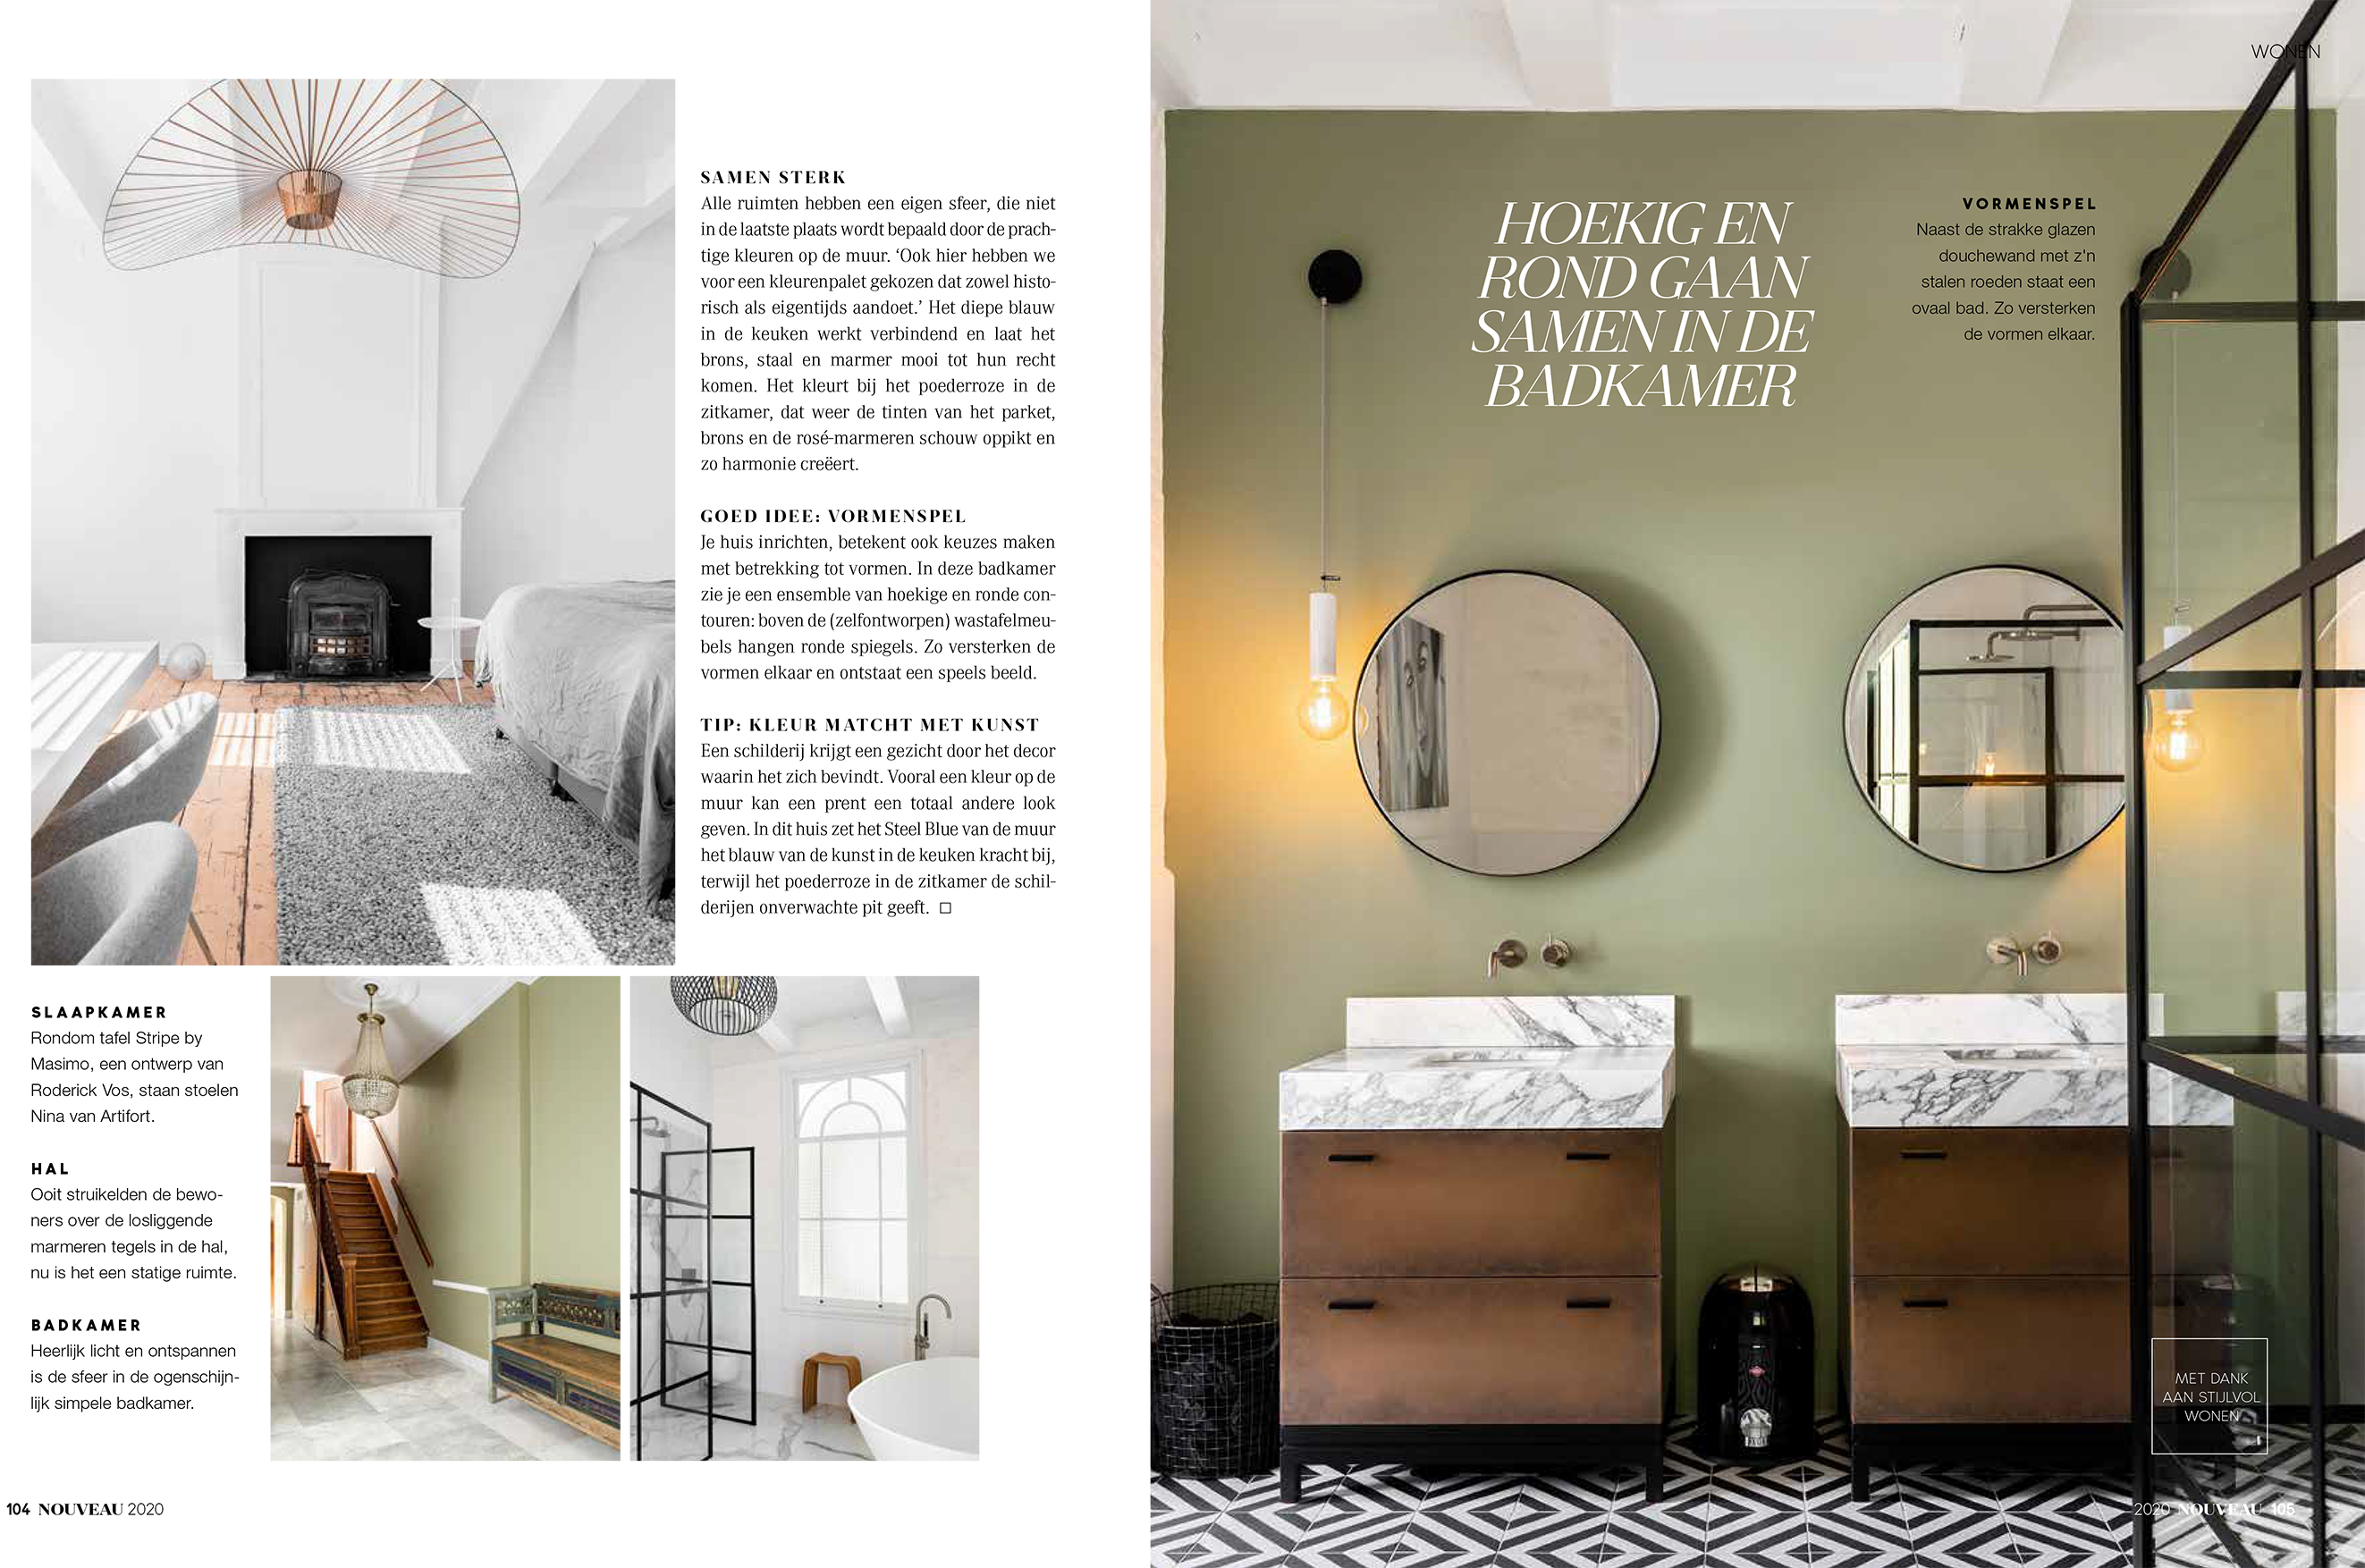 Pure & Original in Nouveau magazine ed1 2020